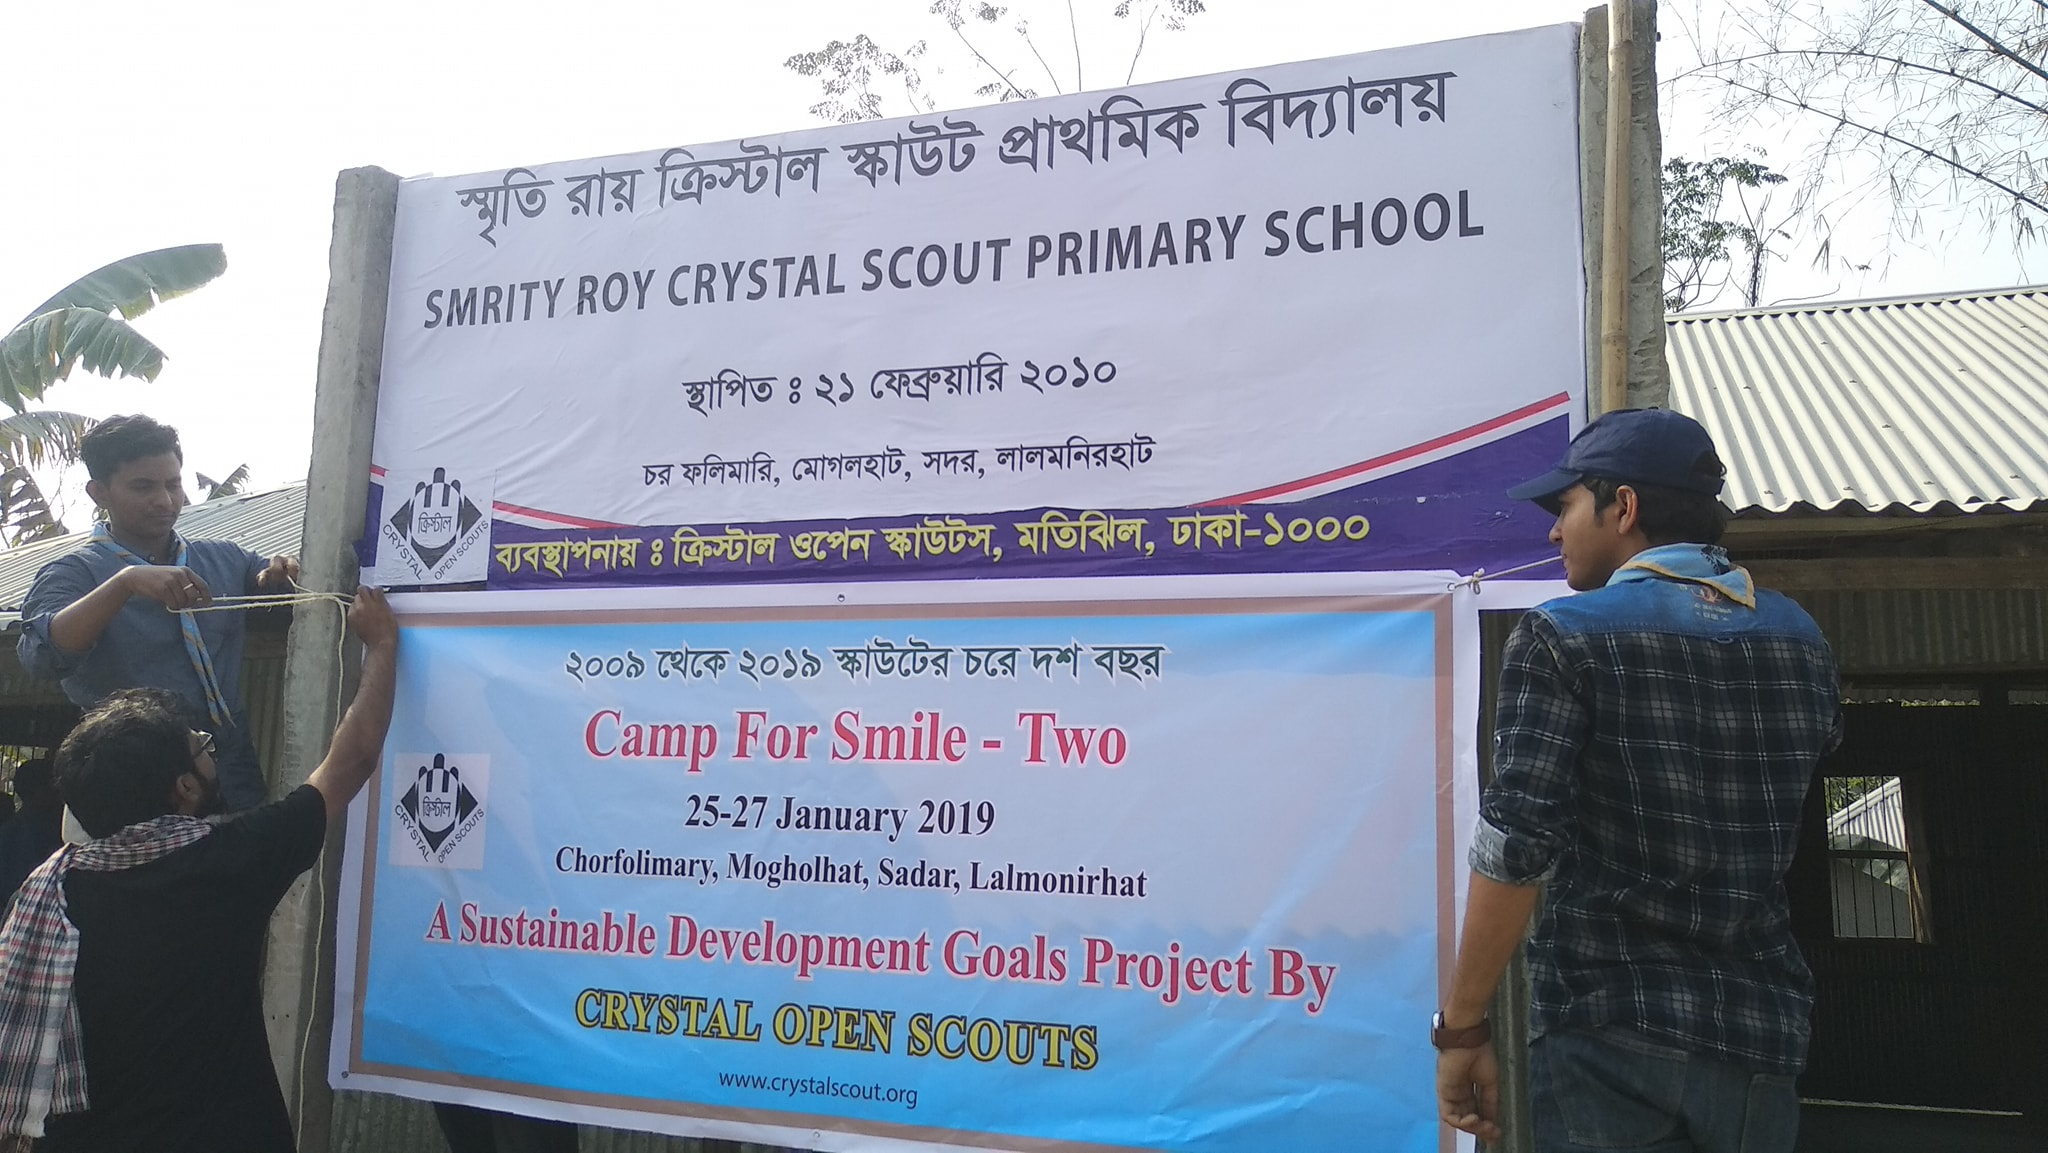 Camp of Smile